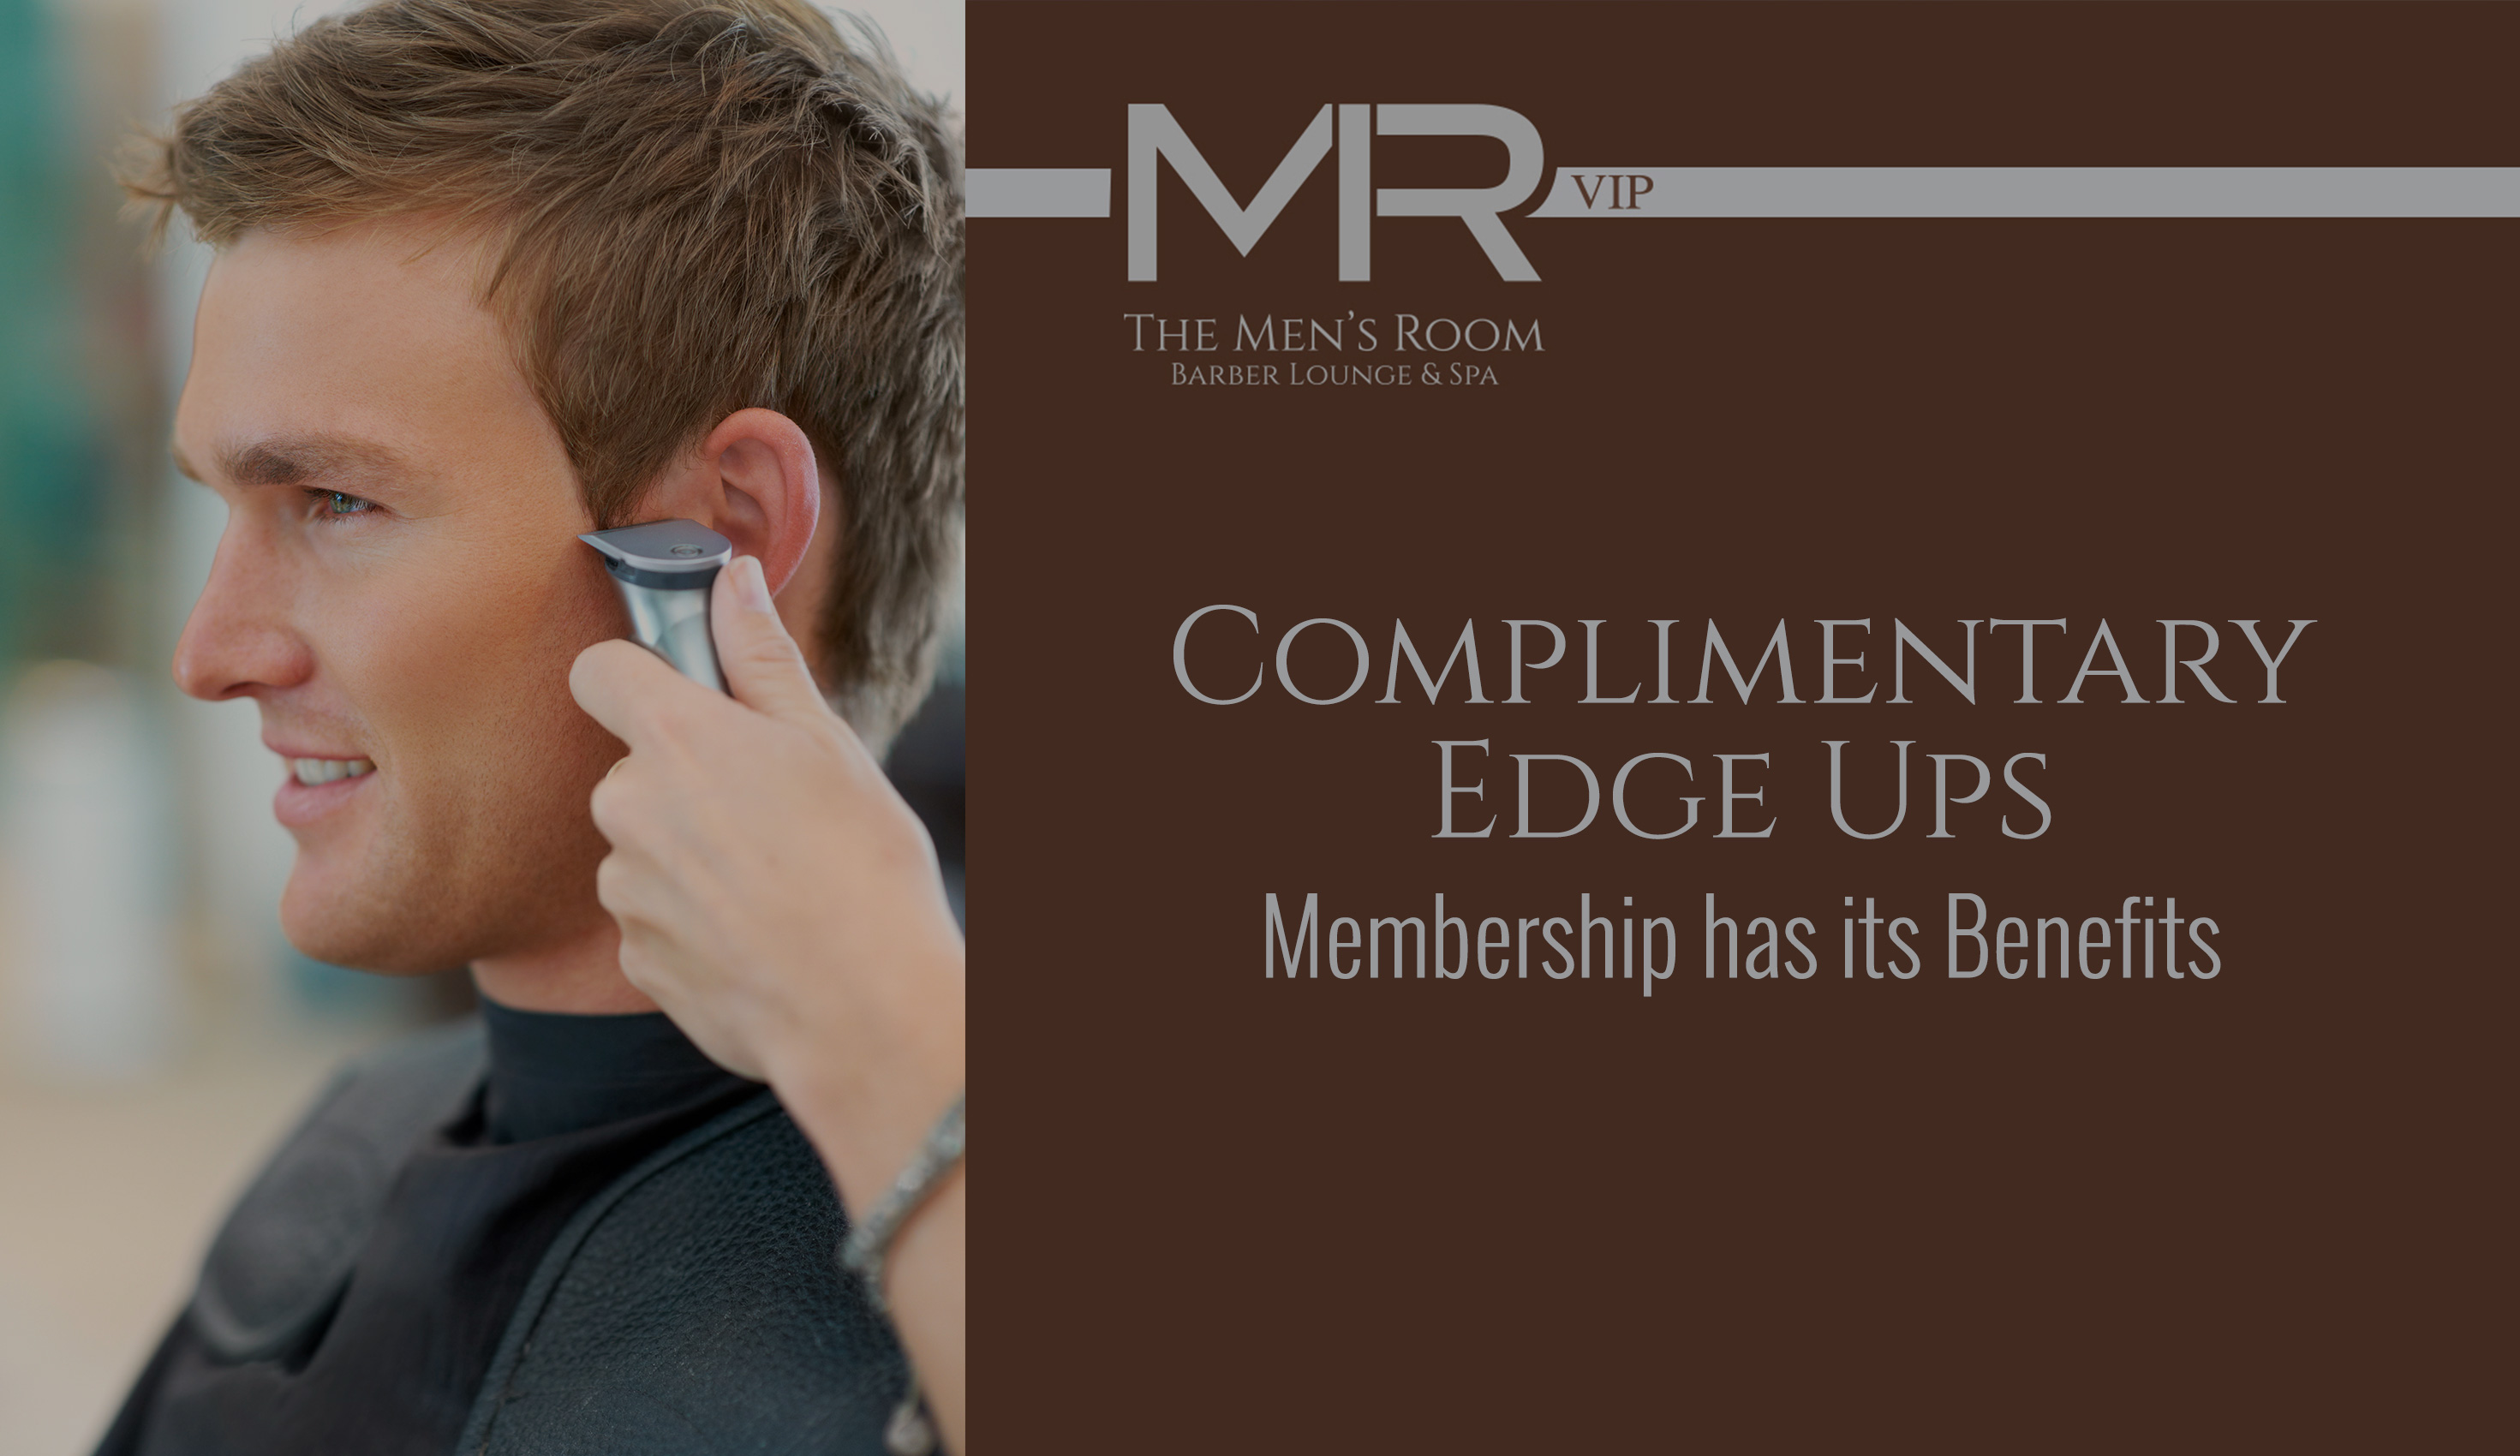 The Men's Room Barber Lounge & Spa Membership